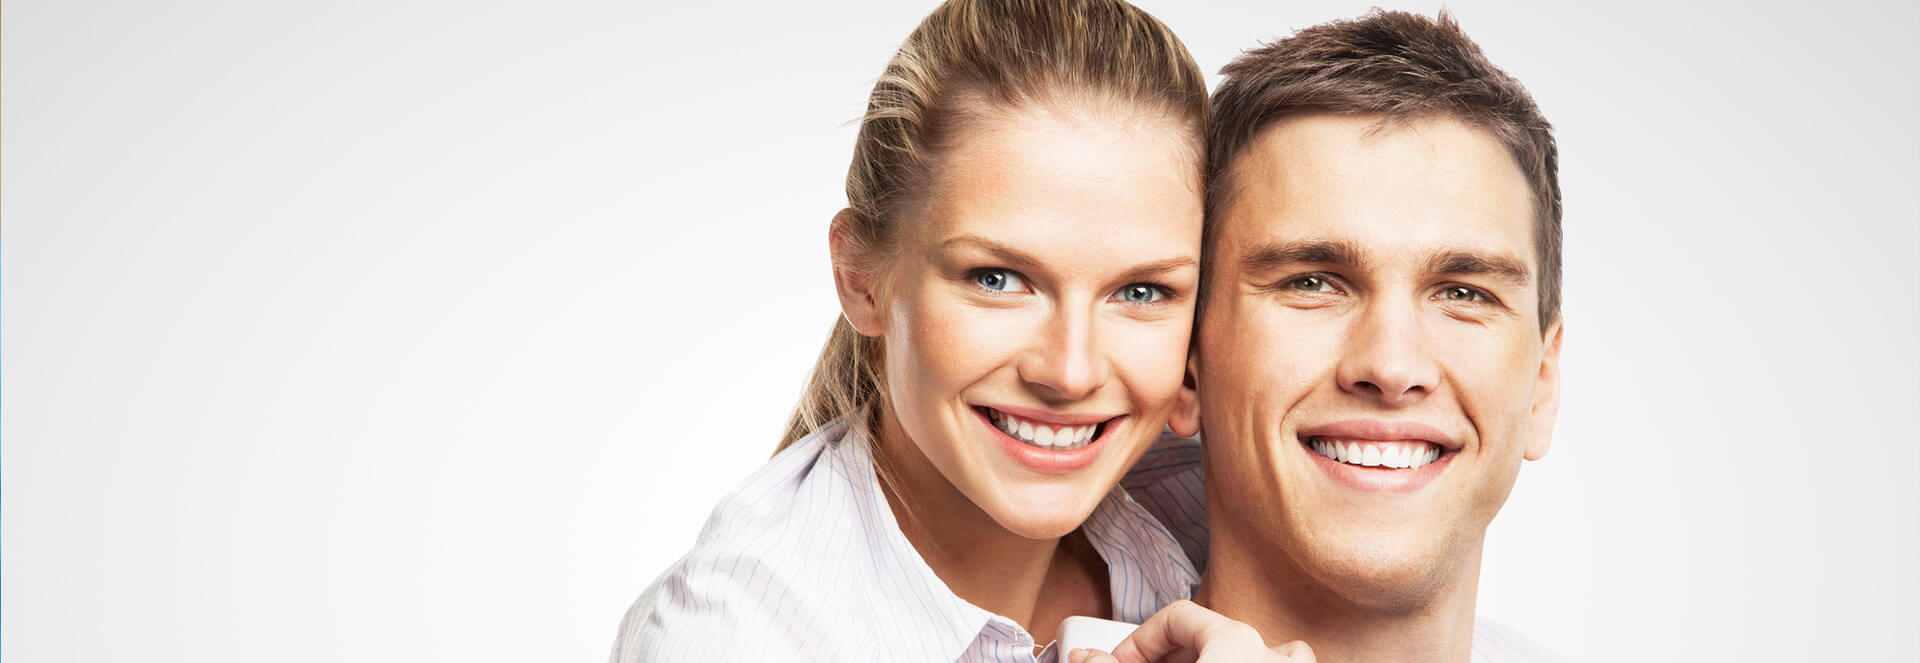 Young couple embracing each other and smiling at the camera